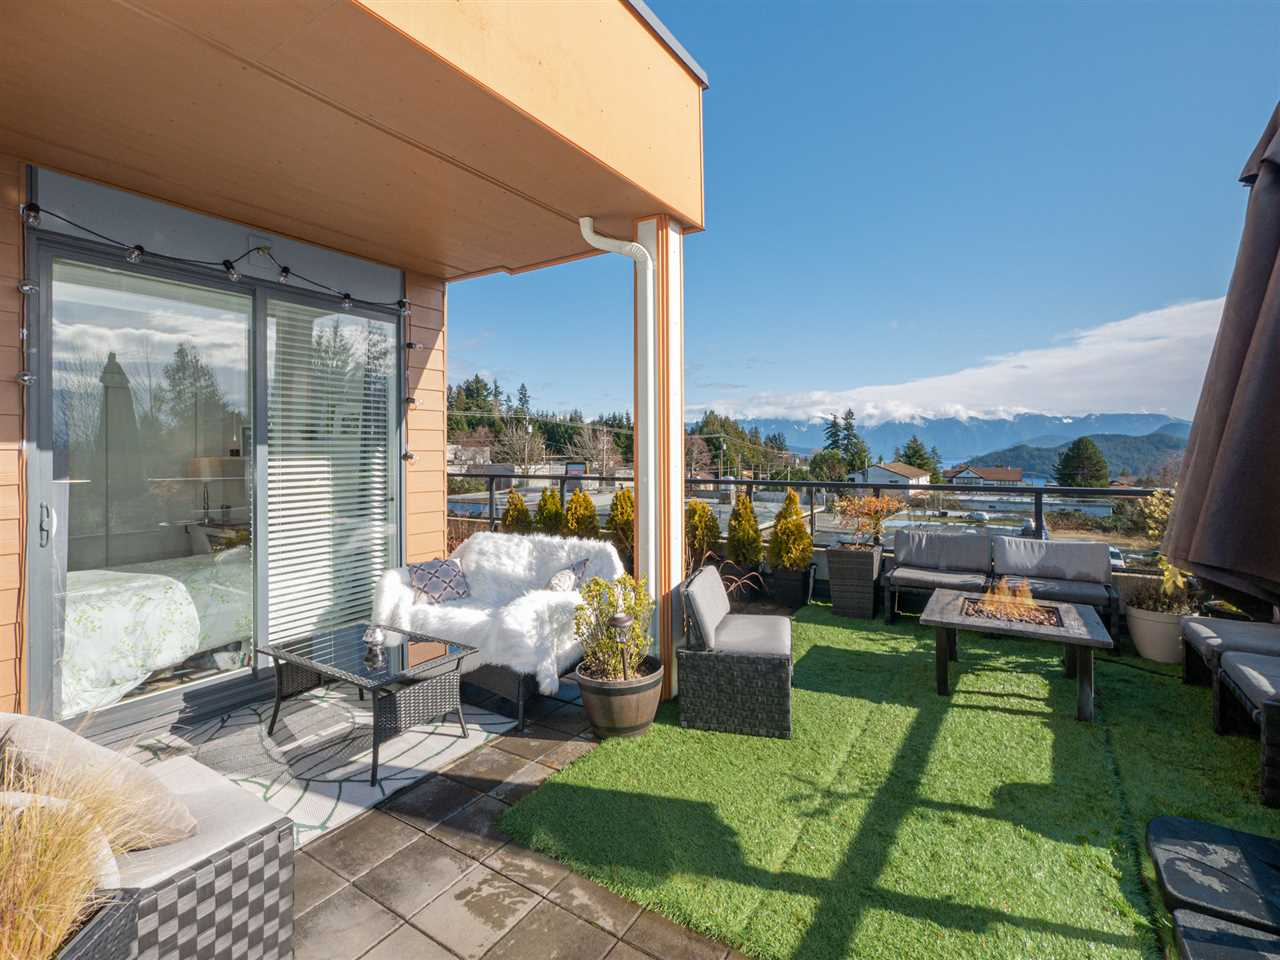 210 210 875 GIBSONS WAY - Gibsons & Area Apartment/Condo for sale, 2 Bedrooms (R2542139) - #31